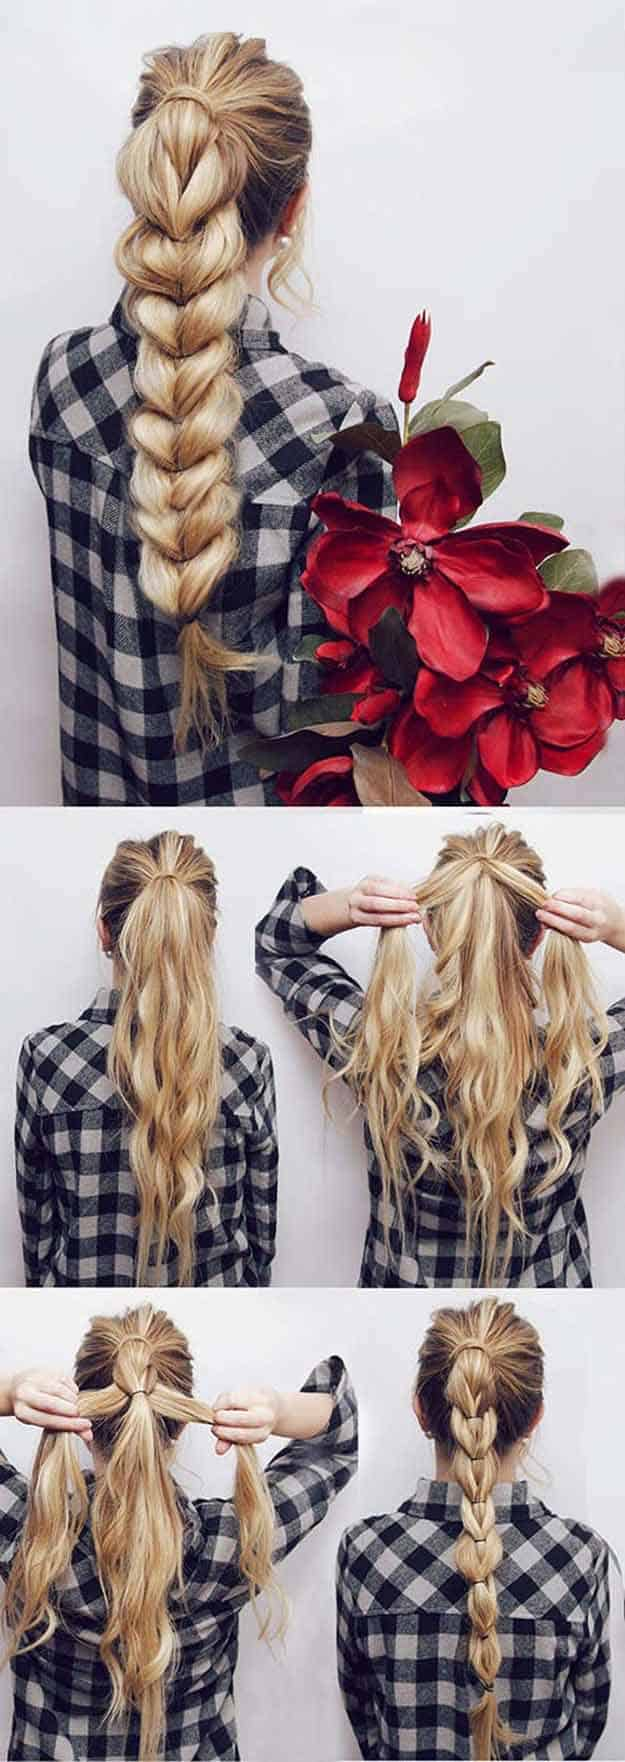 How to do French Braids Step by Step